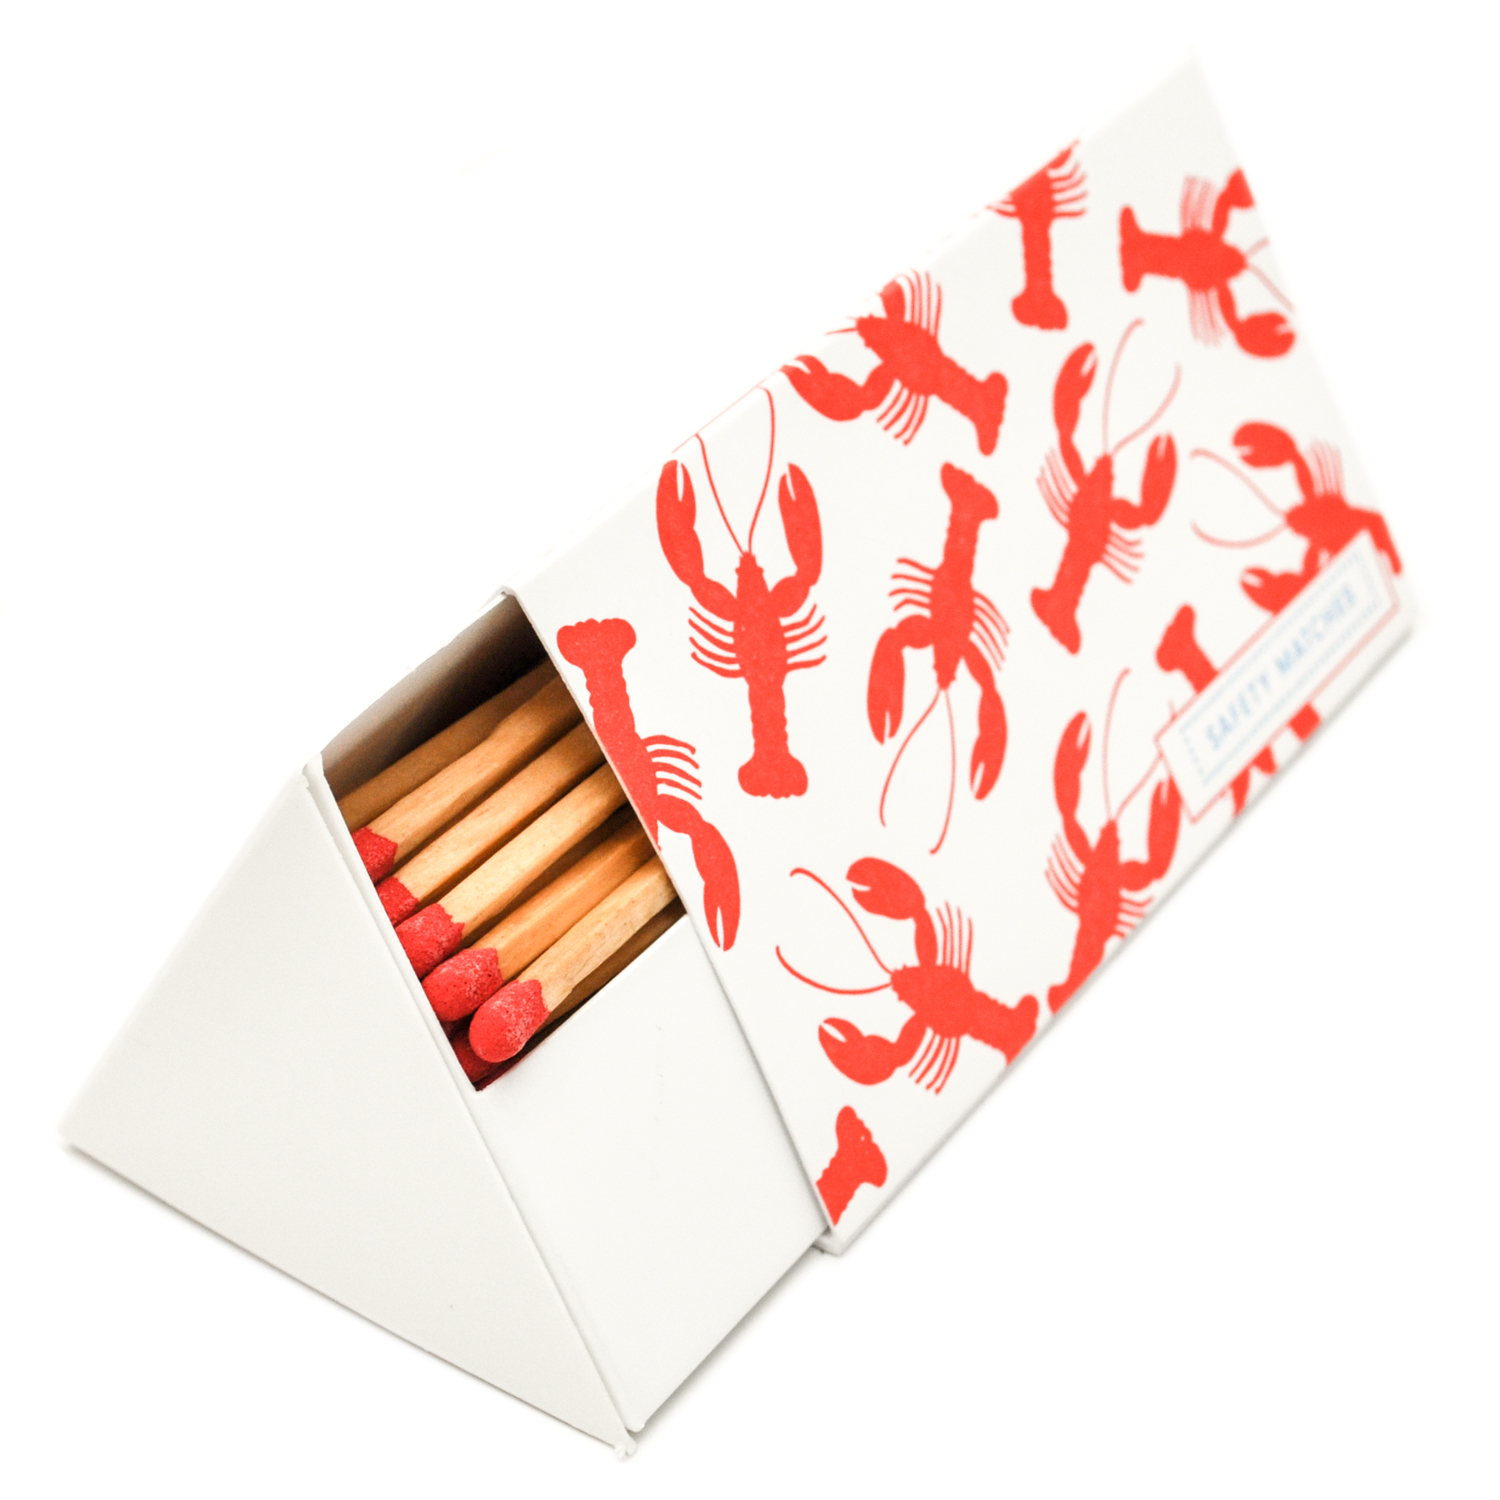 Archivist 'Lobster Roll' Triangular Box Of Matches